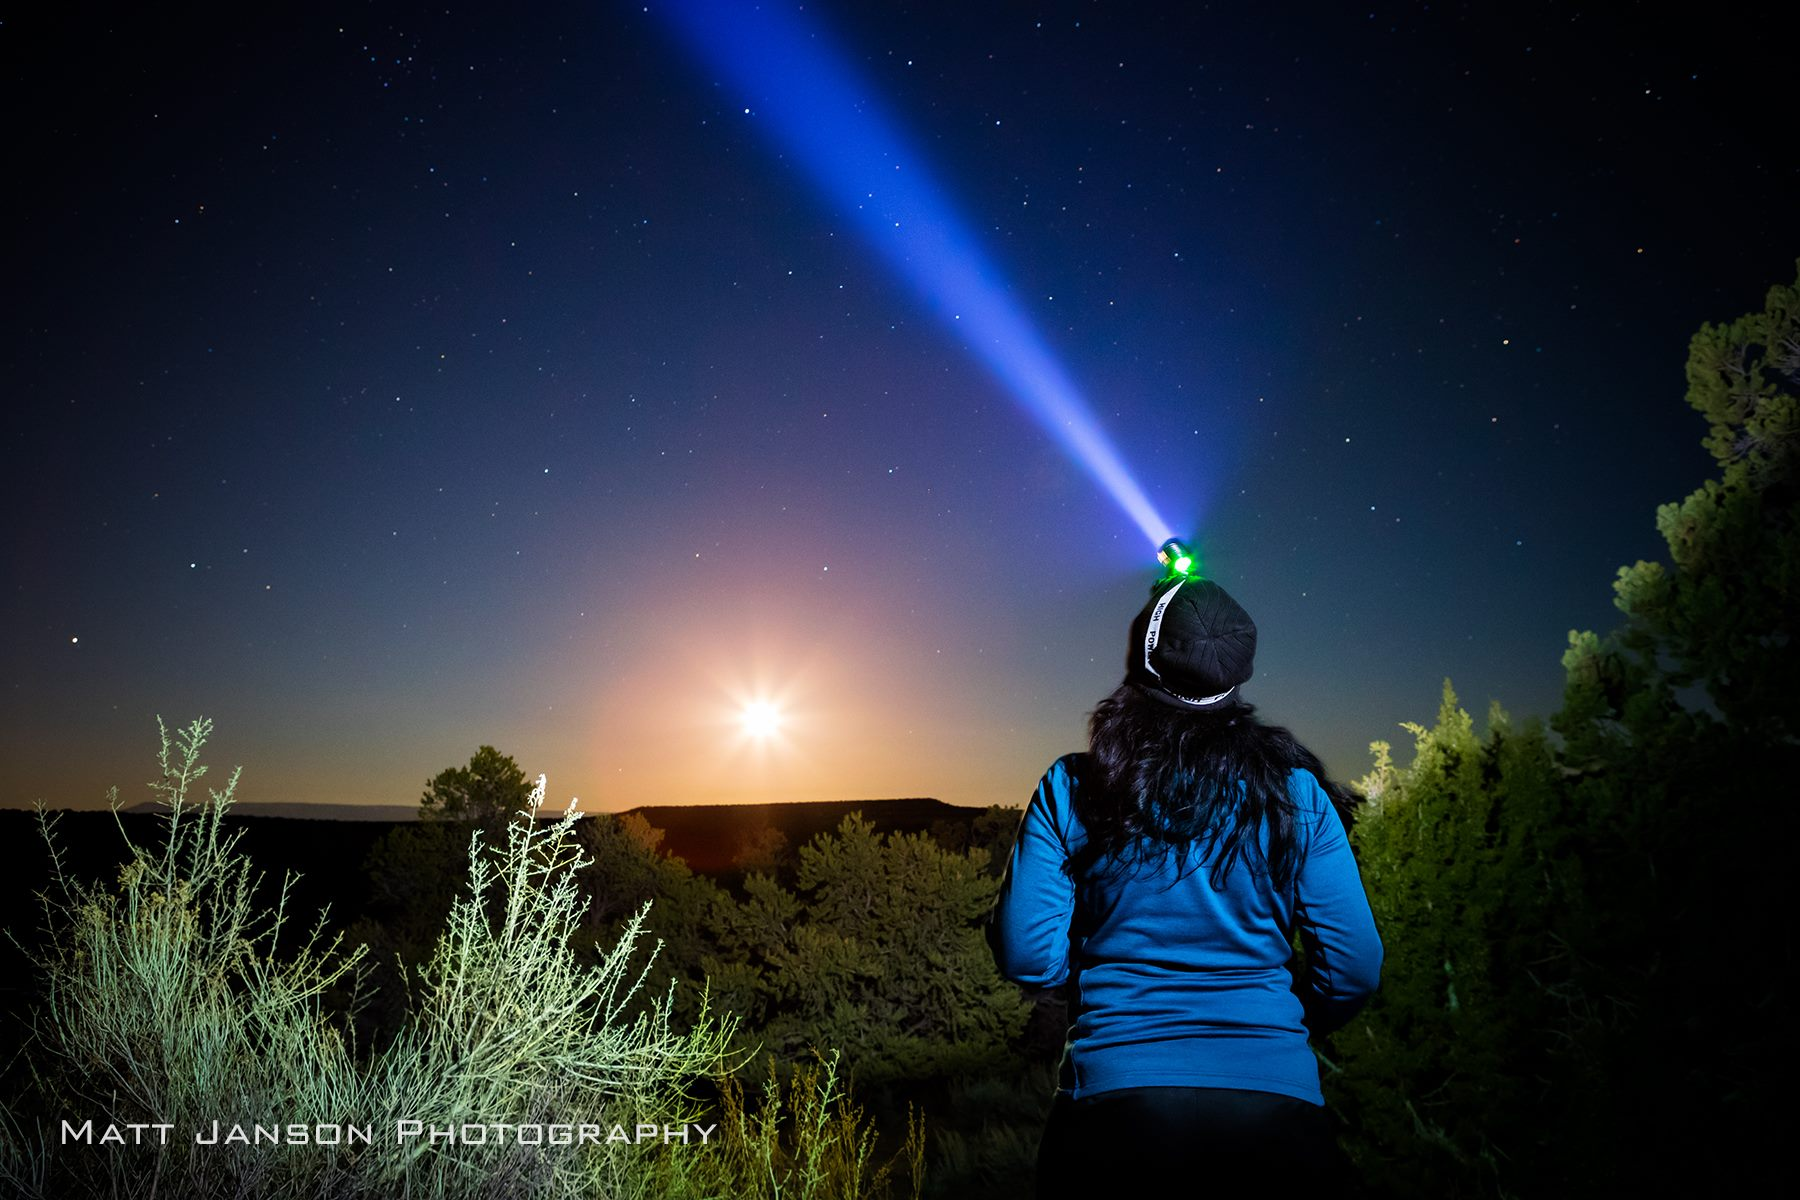 matt janson photography elisa jones no thoroughfare canyon starlight moon winter colorado national monument